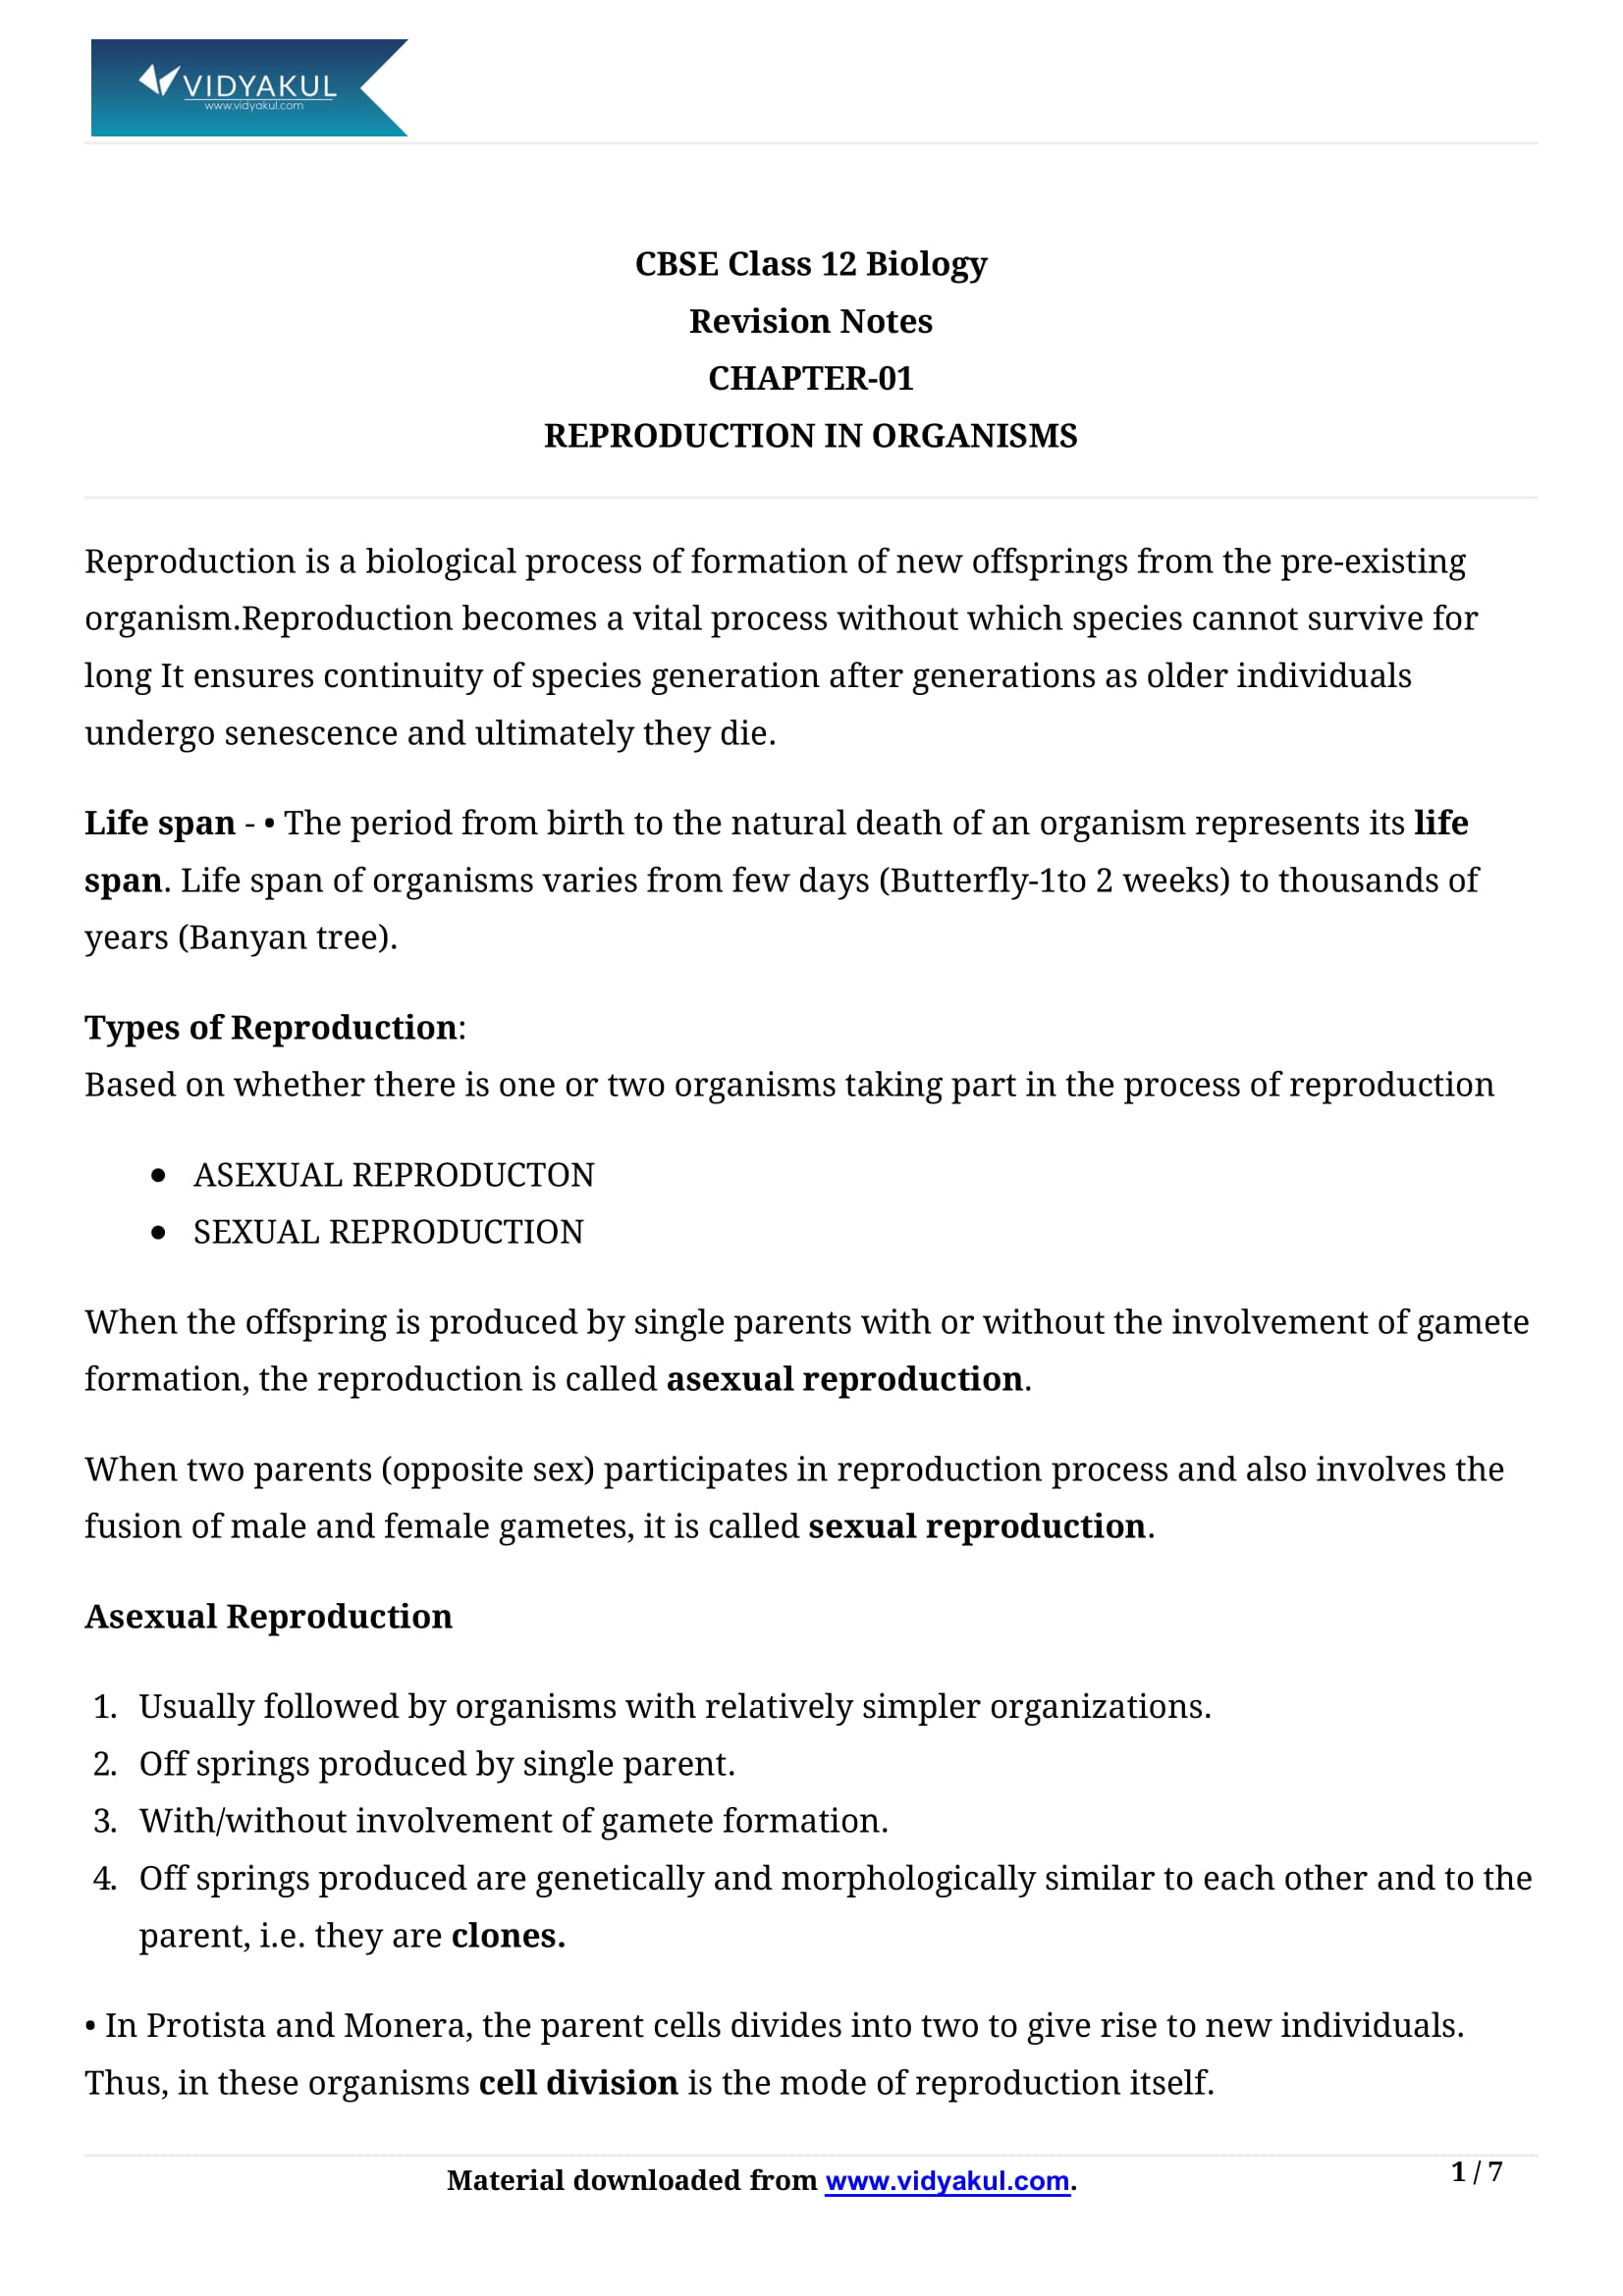 asexual reproduction notes